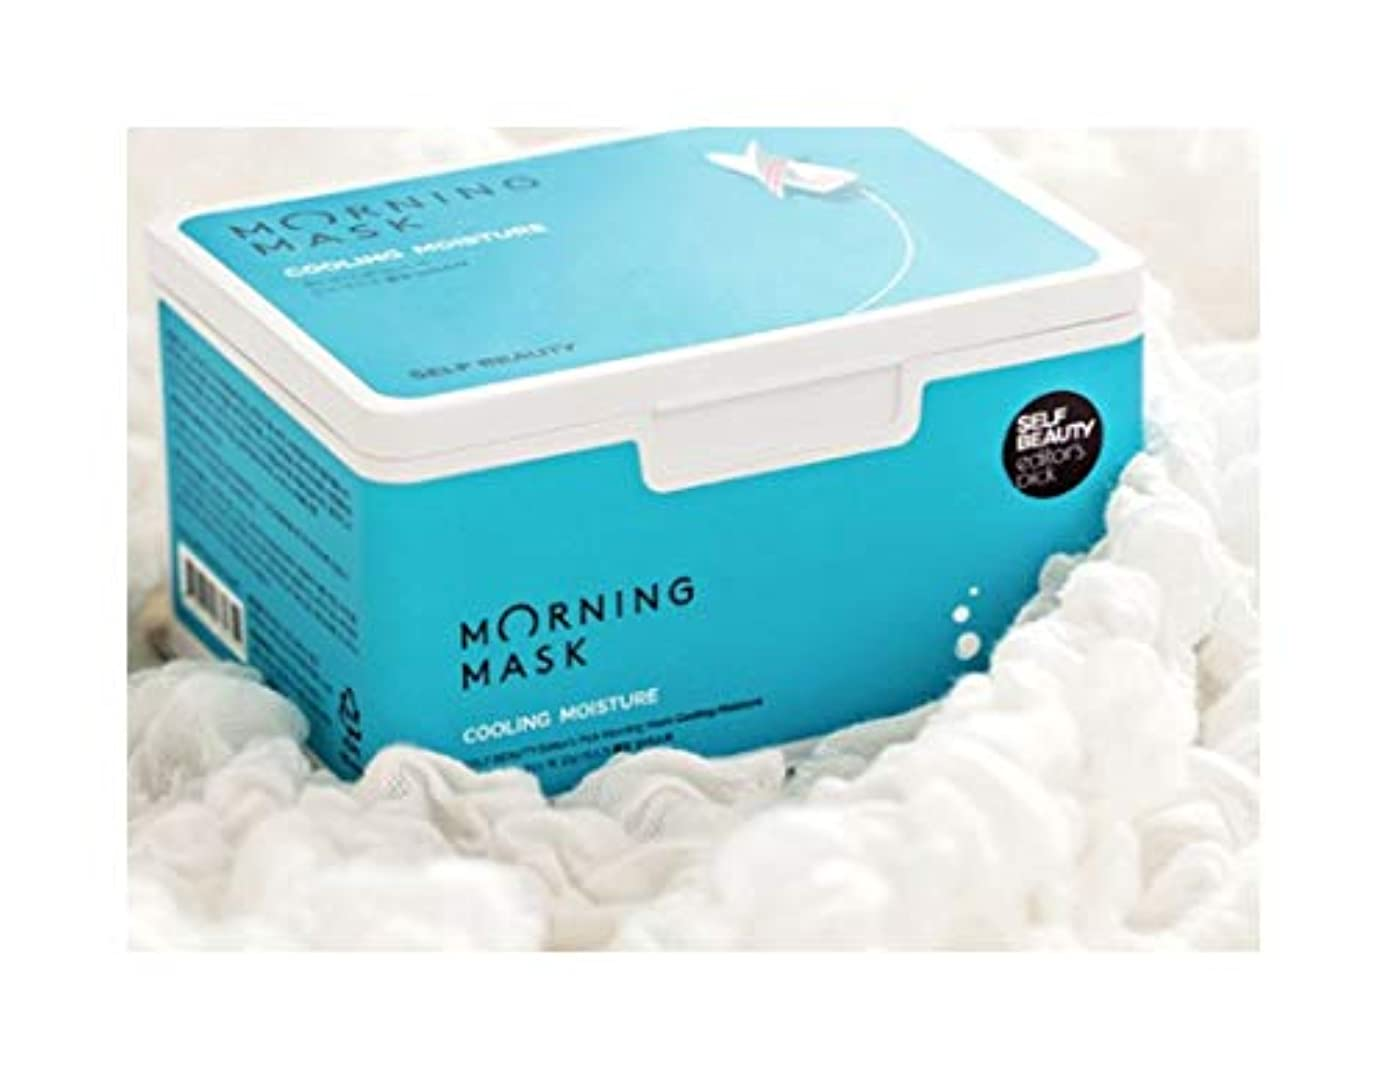 Self Beauty Morning Mask Cooling Moisture 1Box/30Sheet メイク前モーニングマスク、クーリングパック(海外直送品)